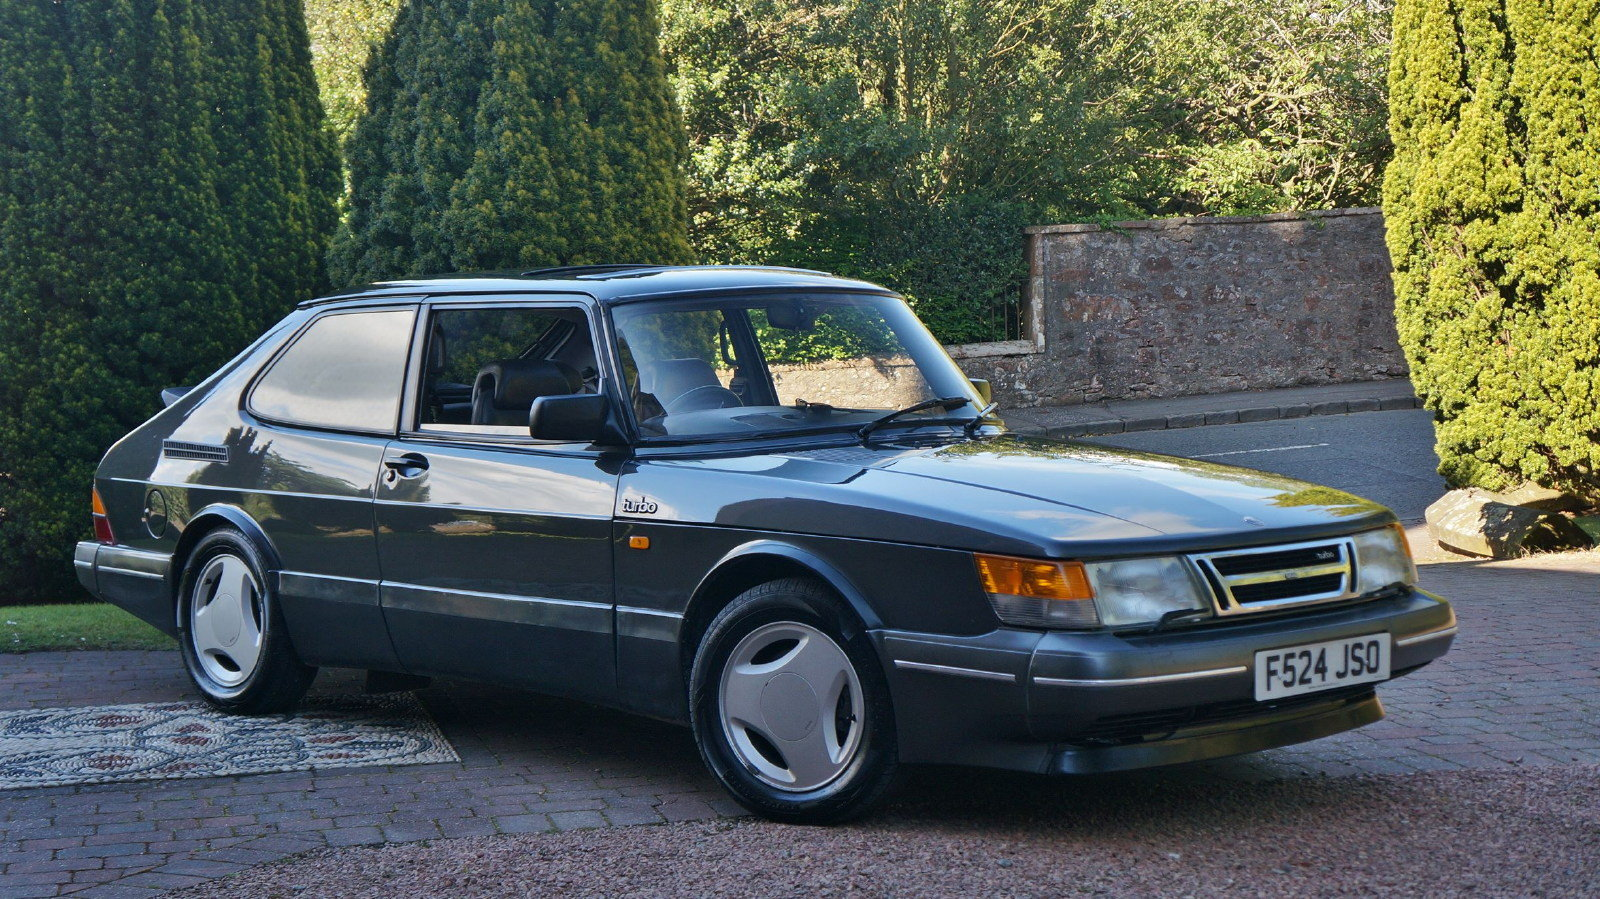 1989 saab 900 t16 s 16v turbo coupe 22 services SOLD (picture 1 of 6)